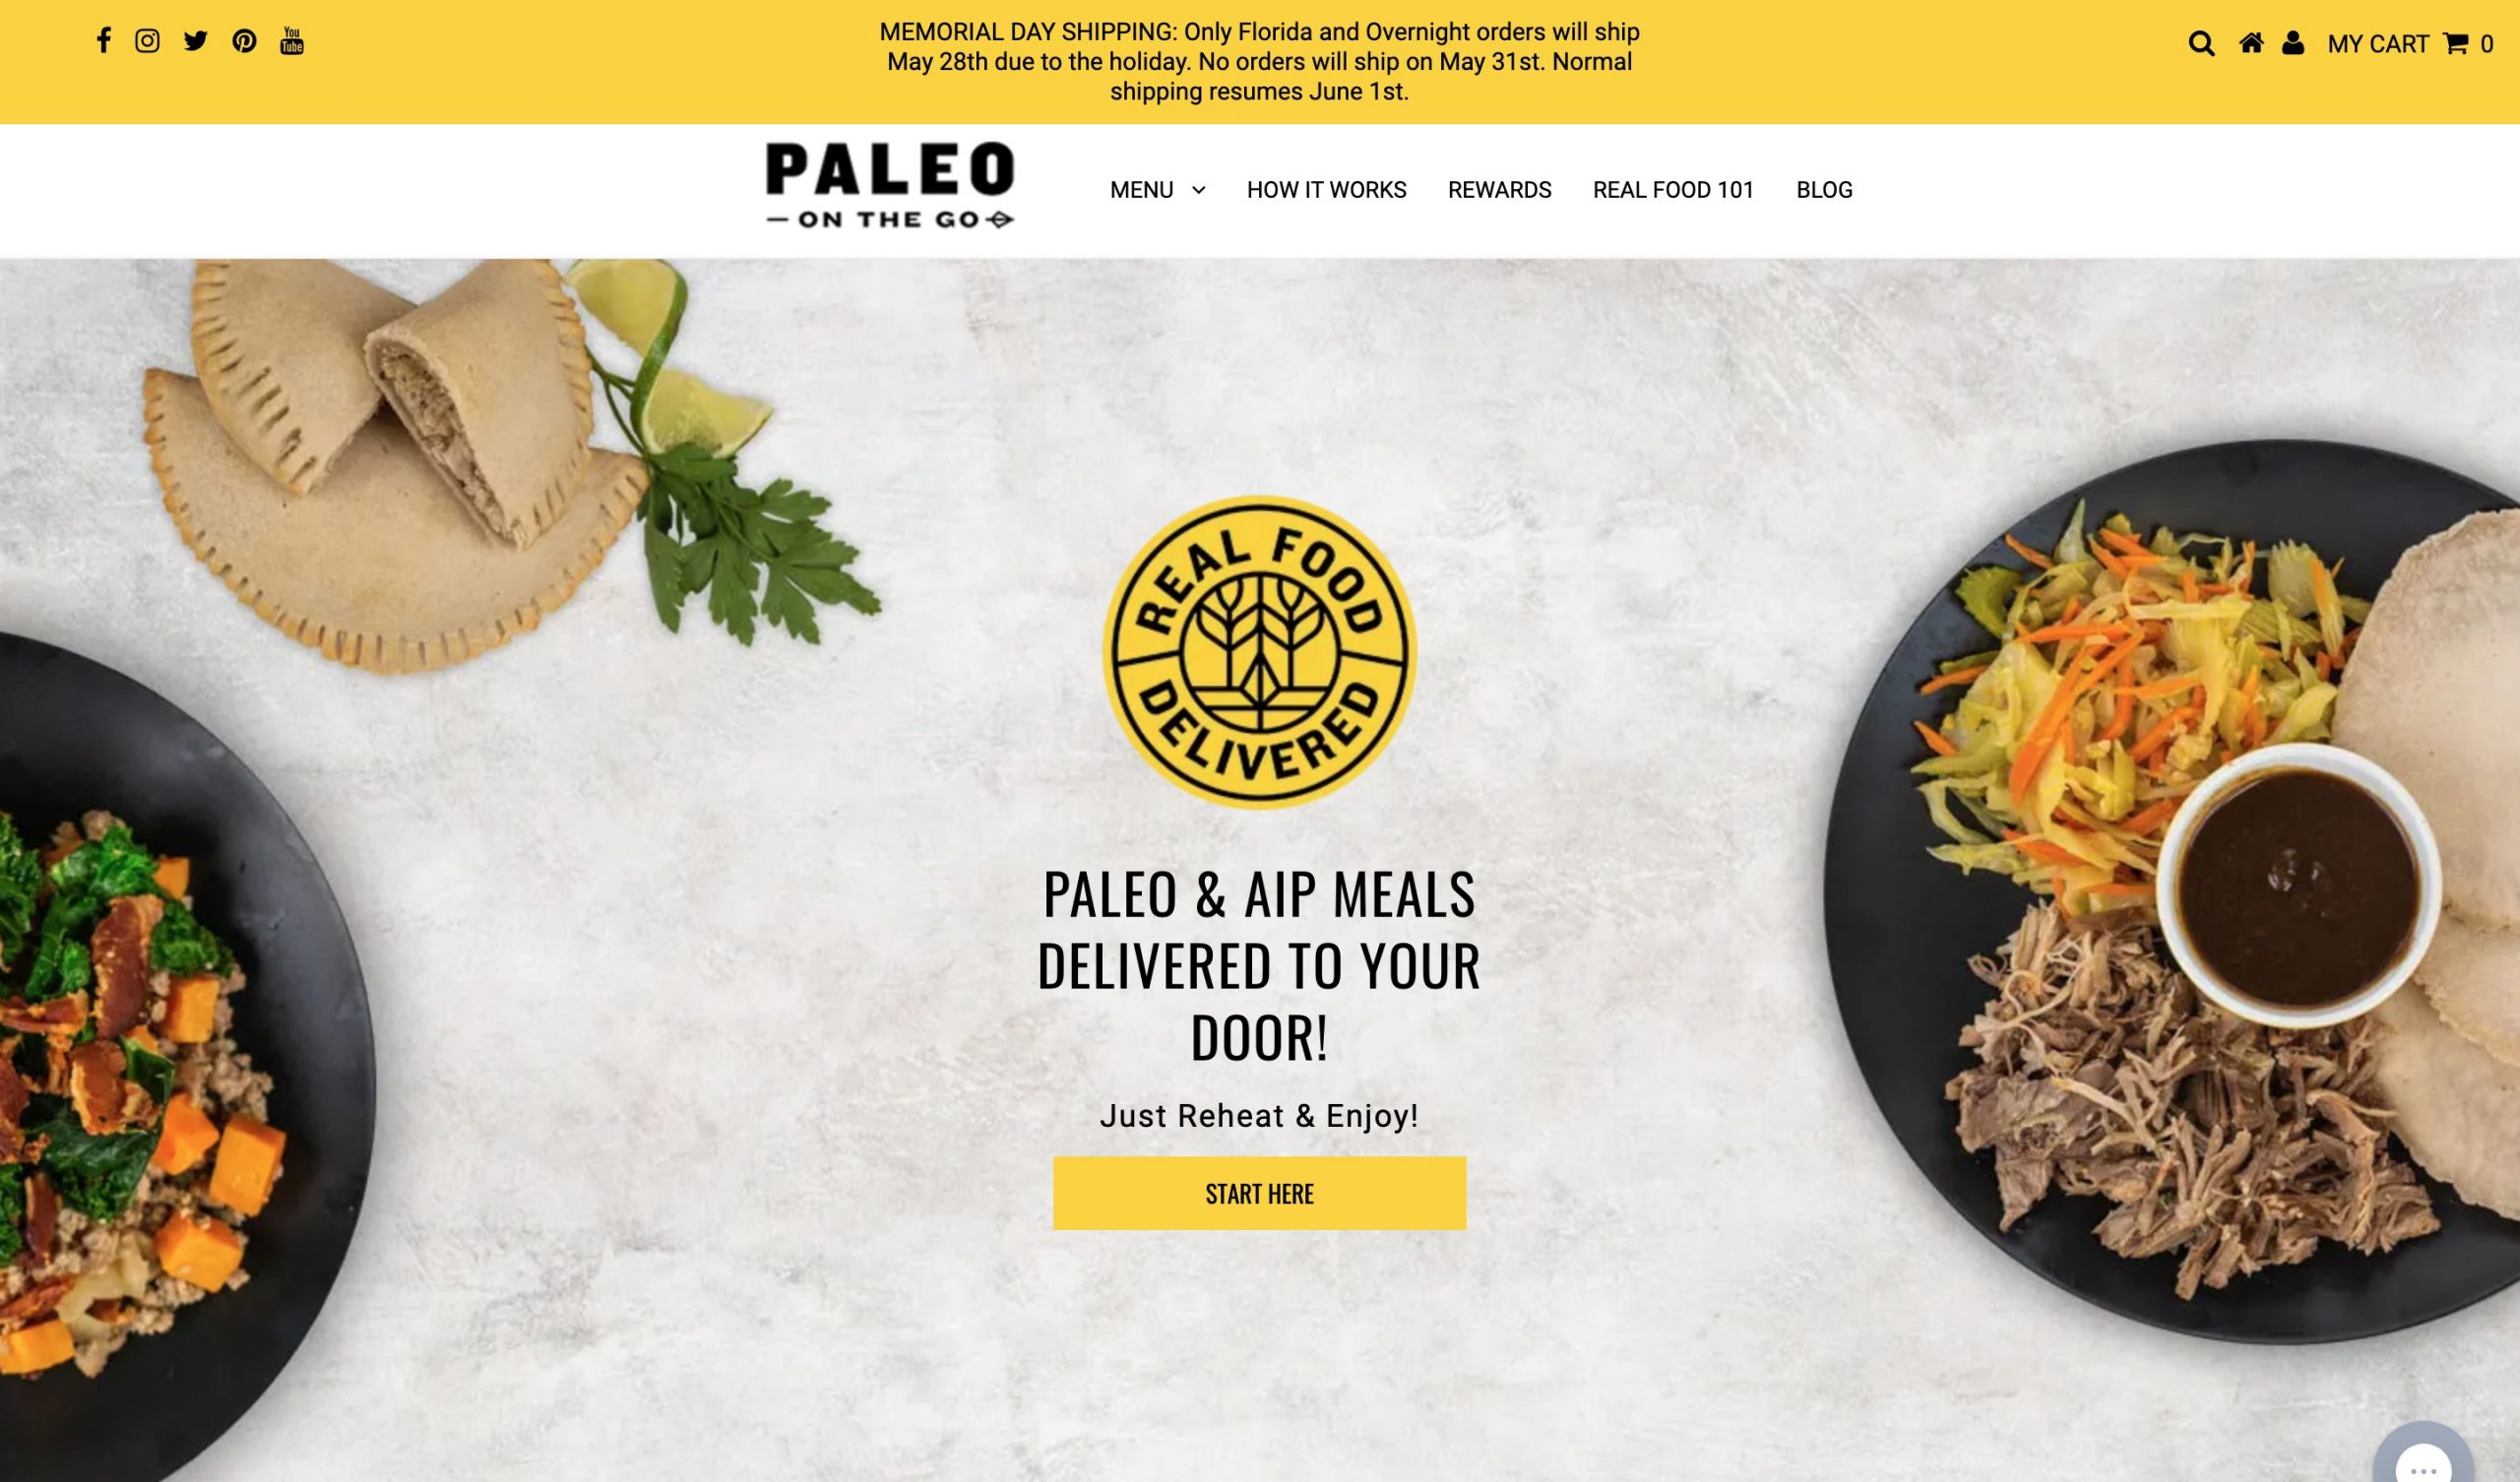 Paleo on the Go main page